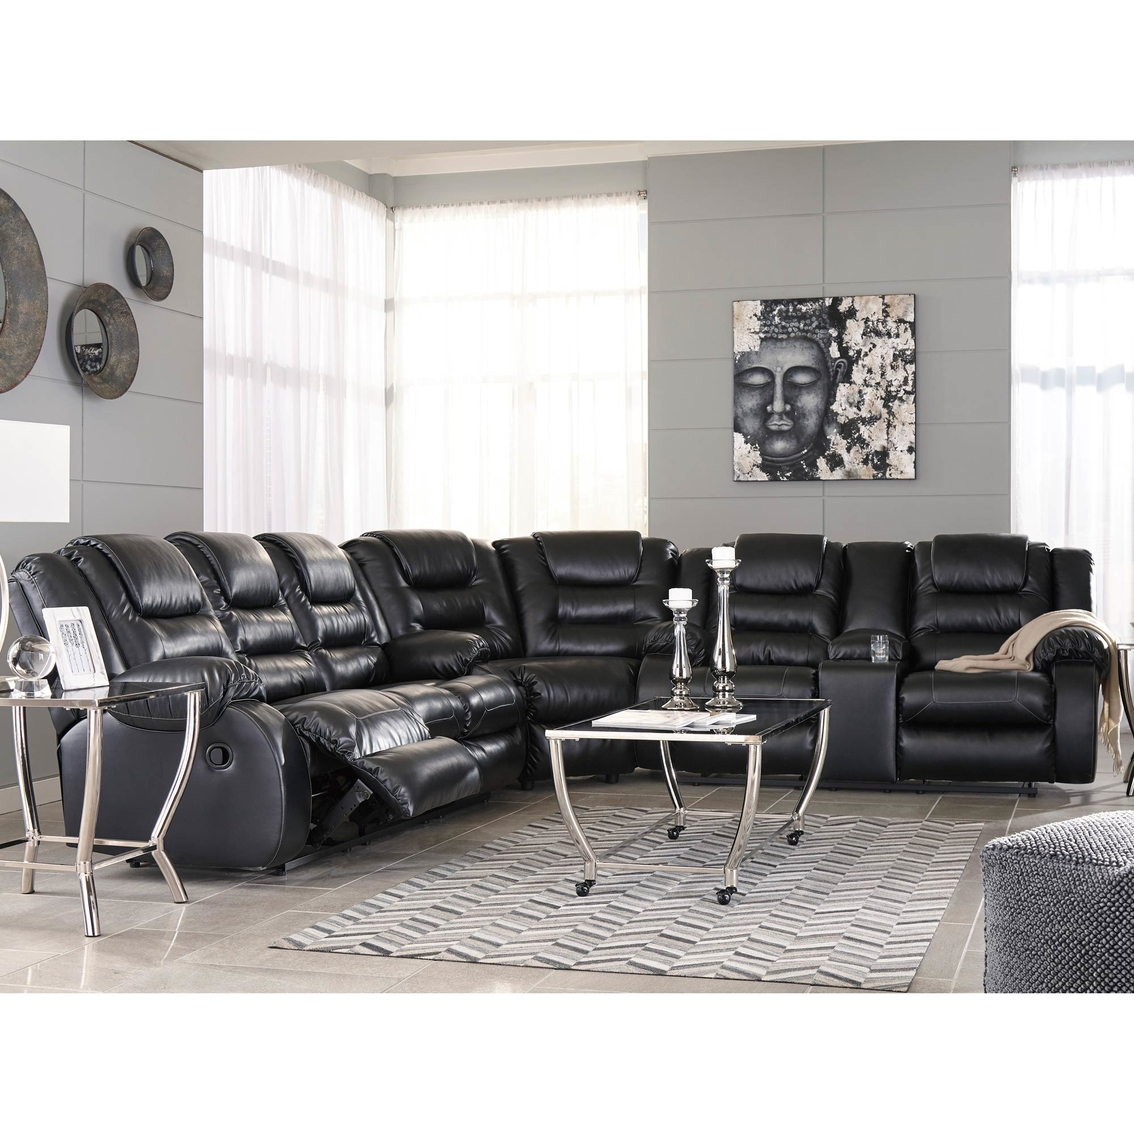 Miraculous Ashley Vacherie Reclining Sectional Sofas Couches Home Gmtry Best Dining Table And Chair Ideas Images Gmtryco